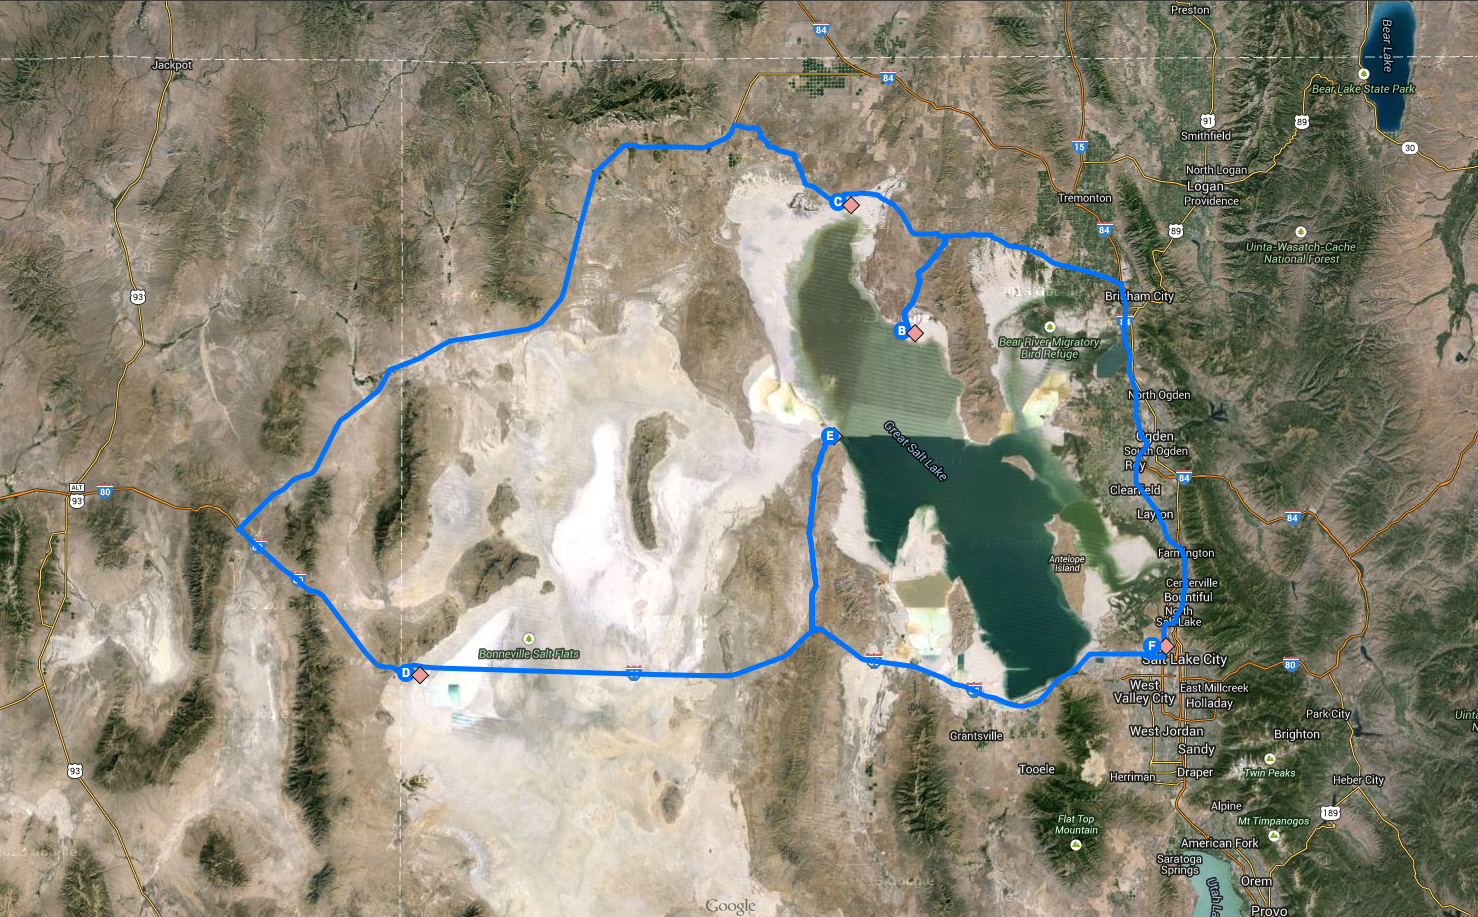 Itinerary map of the studio's planned trip around the Great Salt Lake.